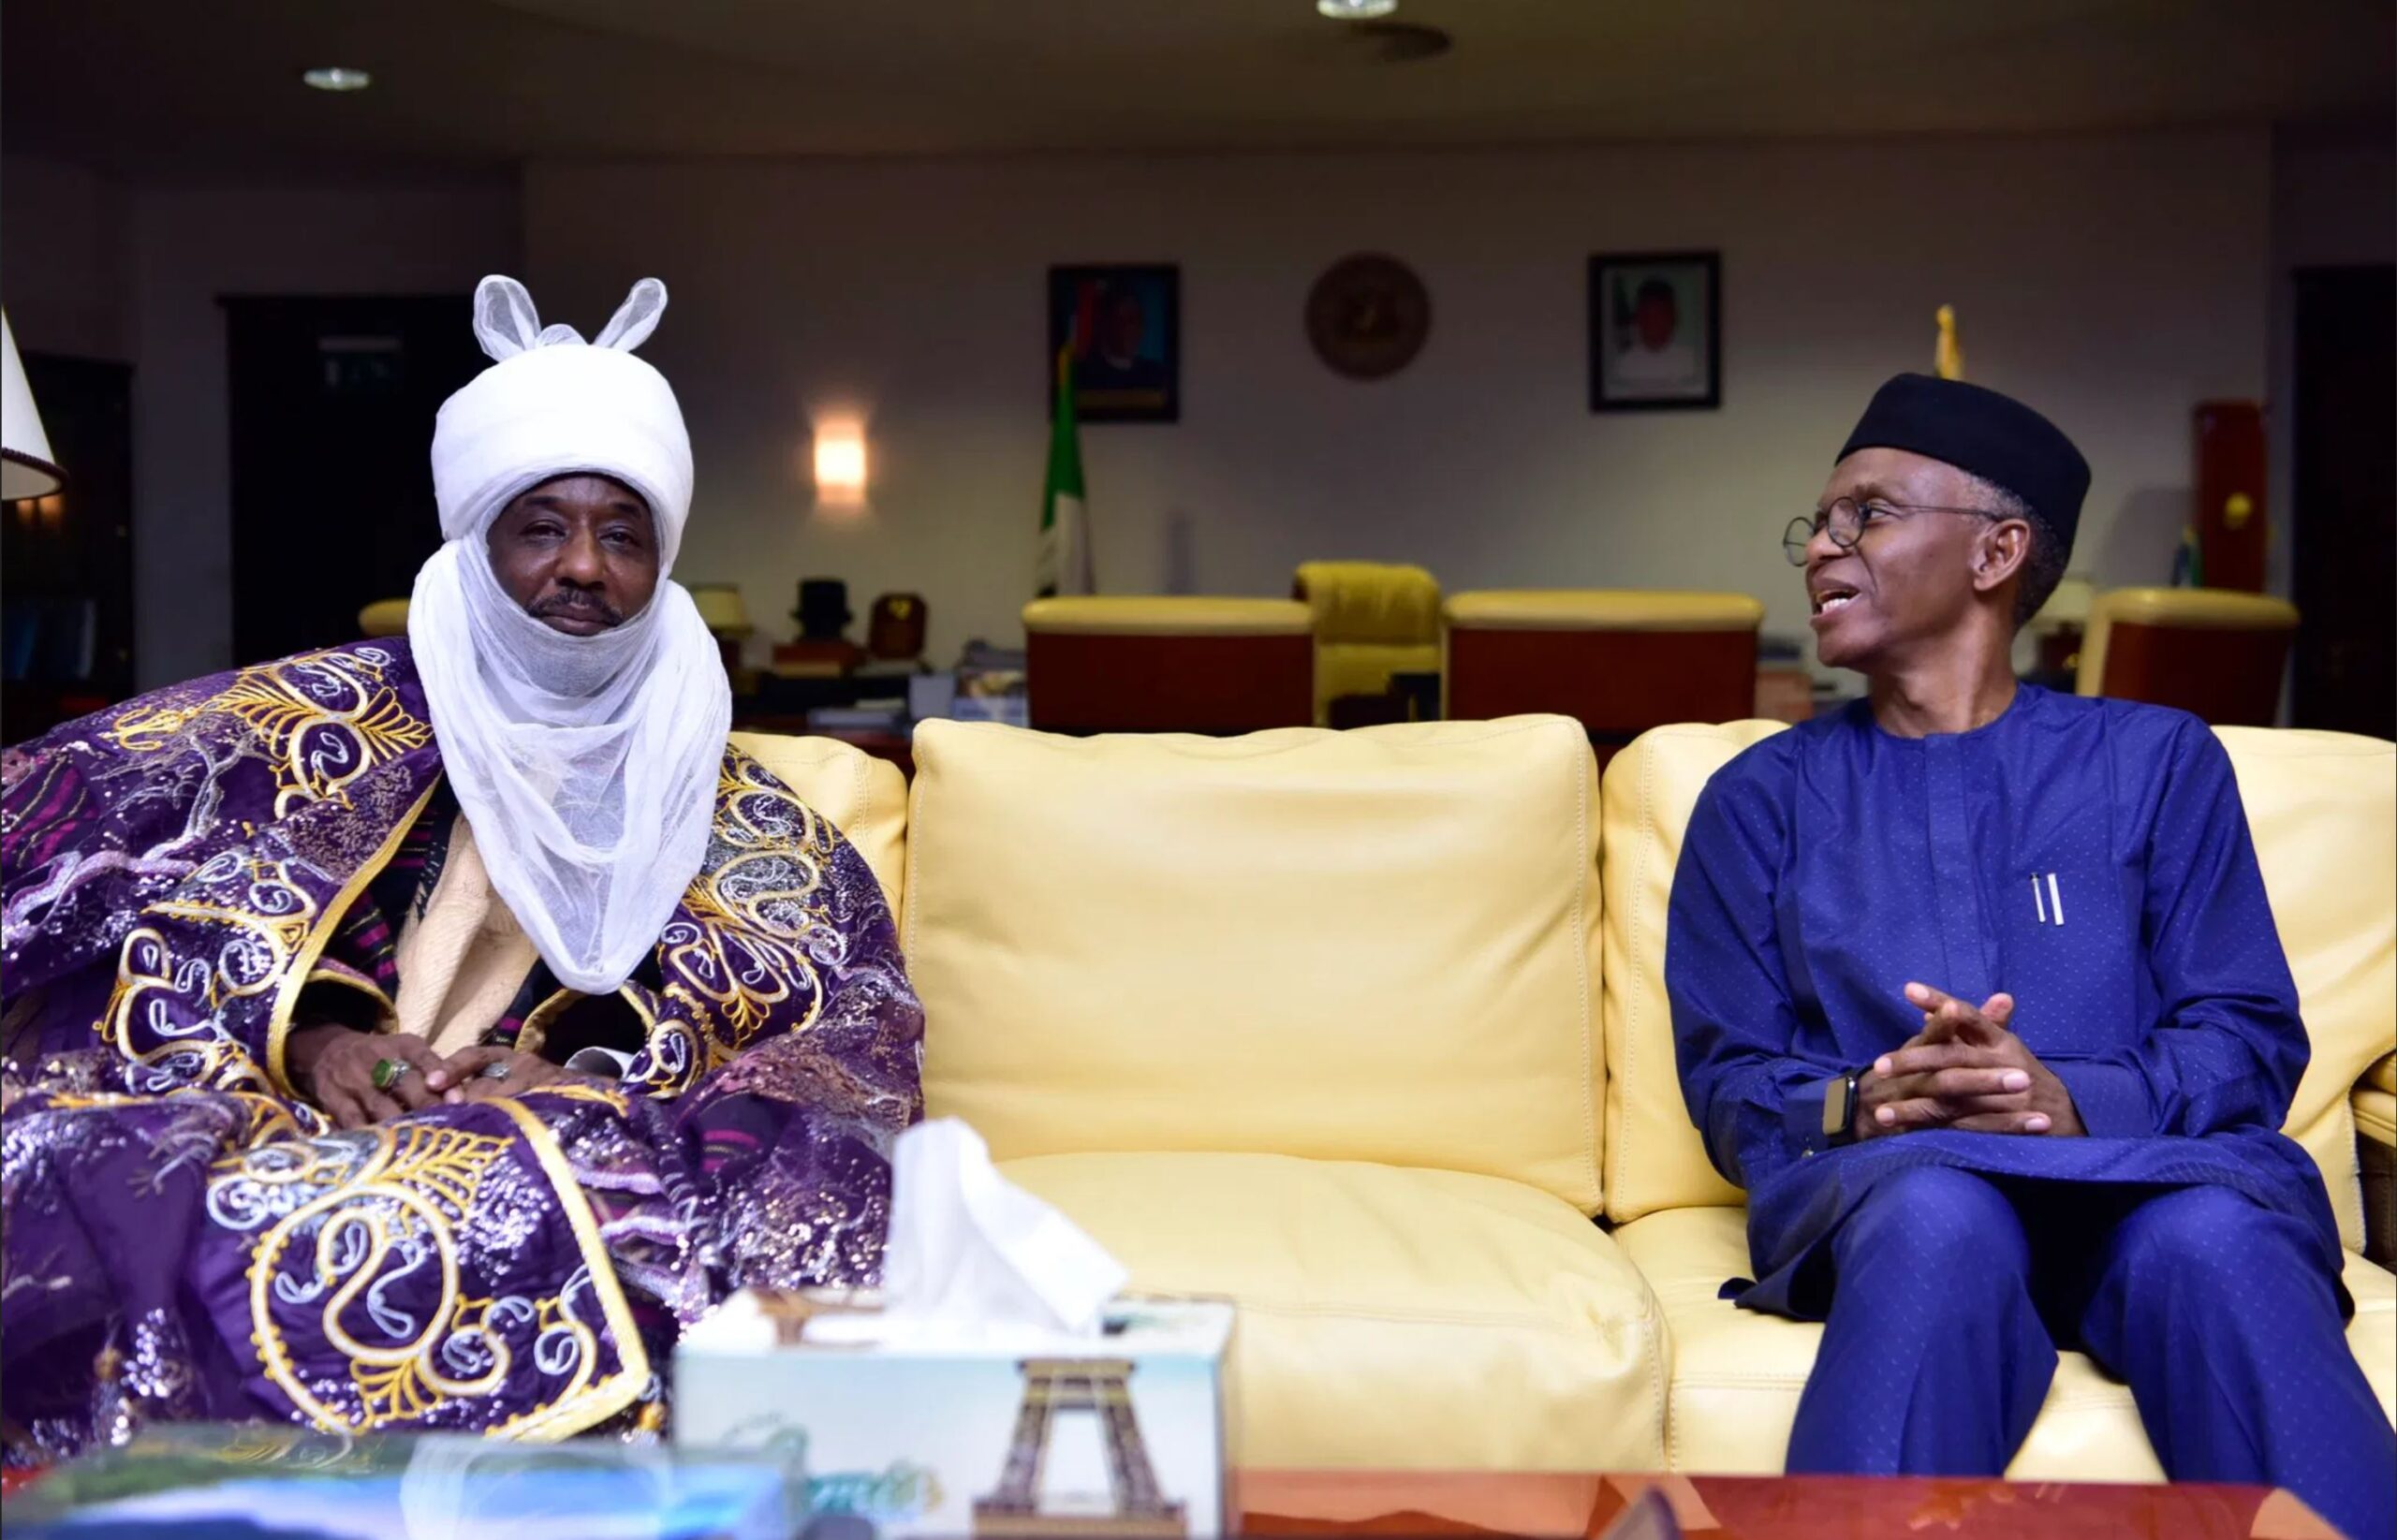 Deposed Kano Emir, Sanusi II arrives Kaduna on First Visit after Dethronement